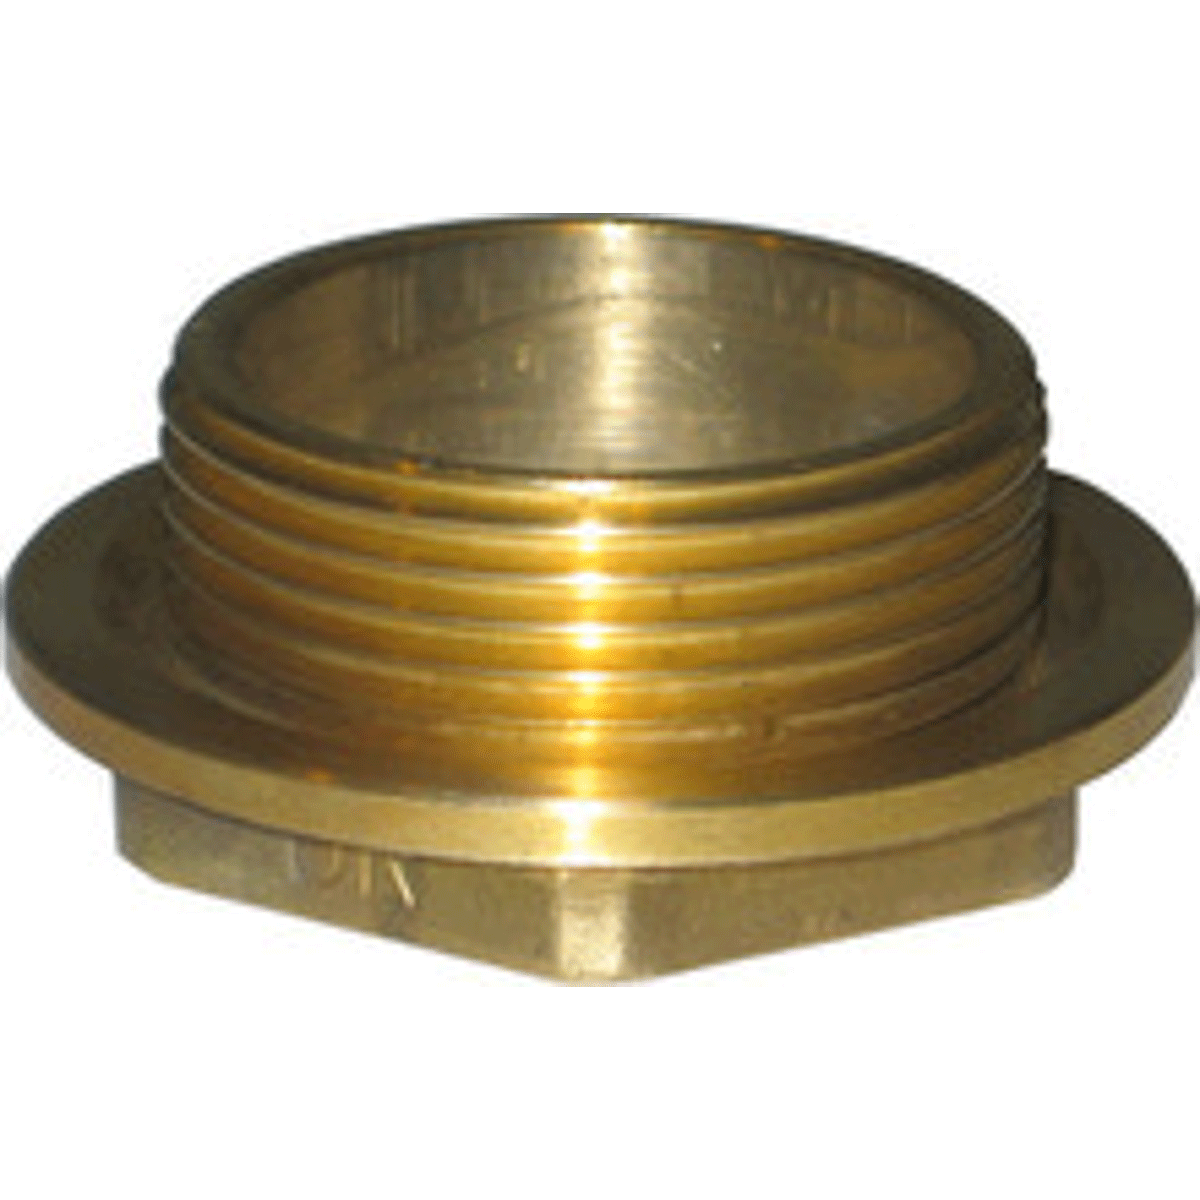 Condensor Backing Nut - Essencia